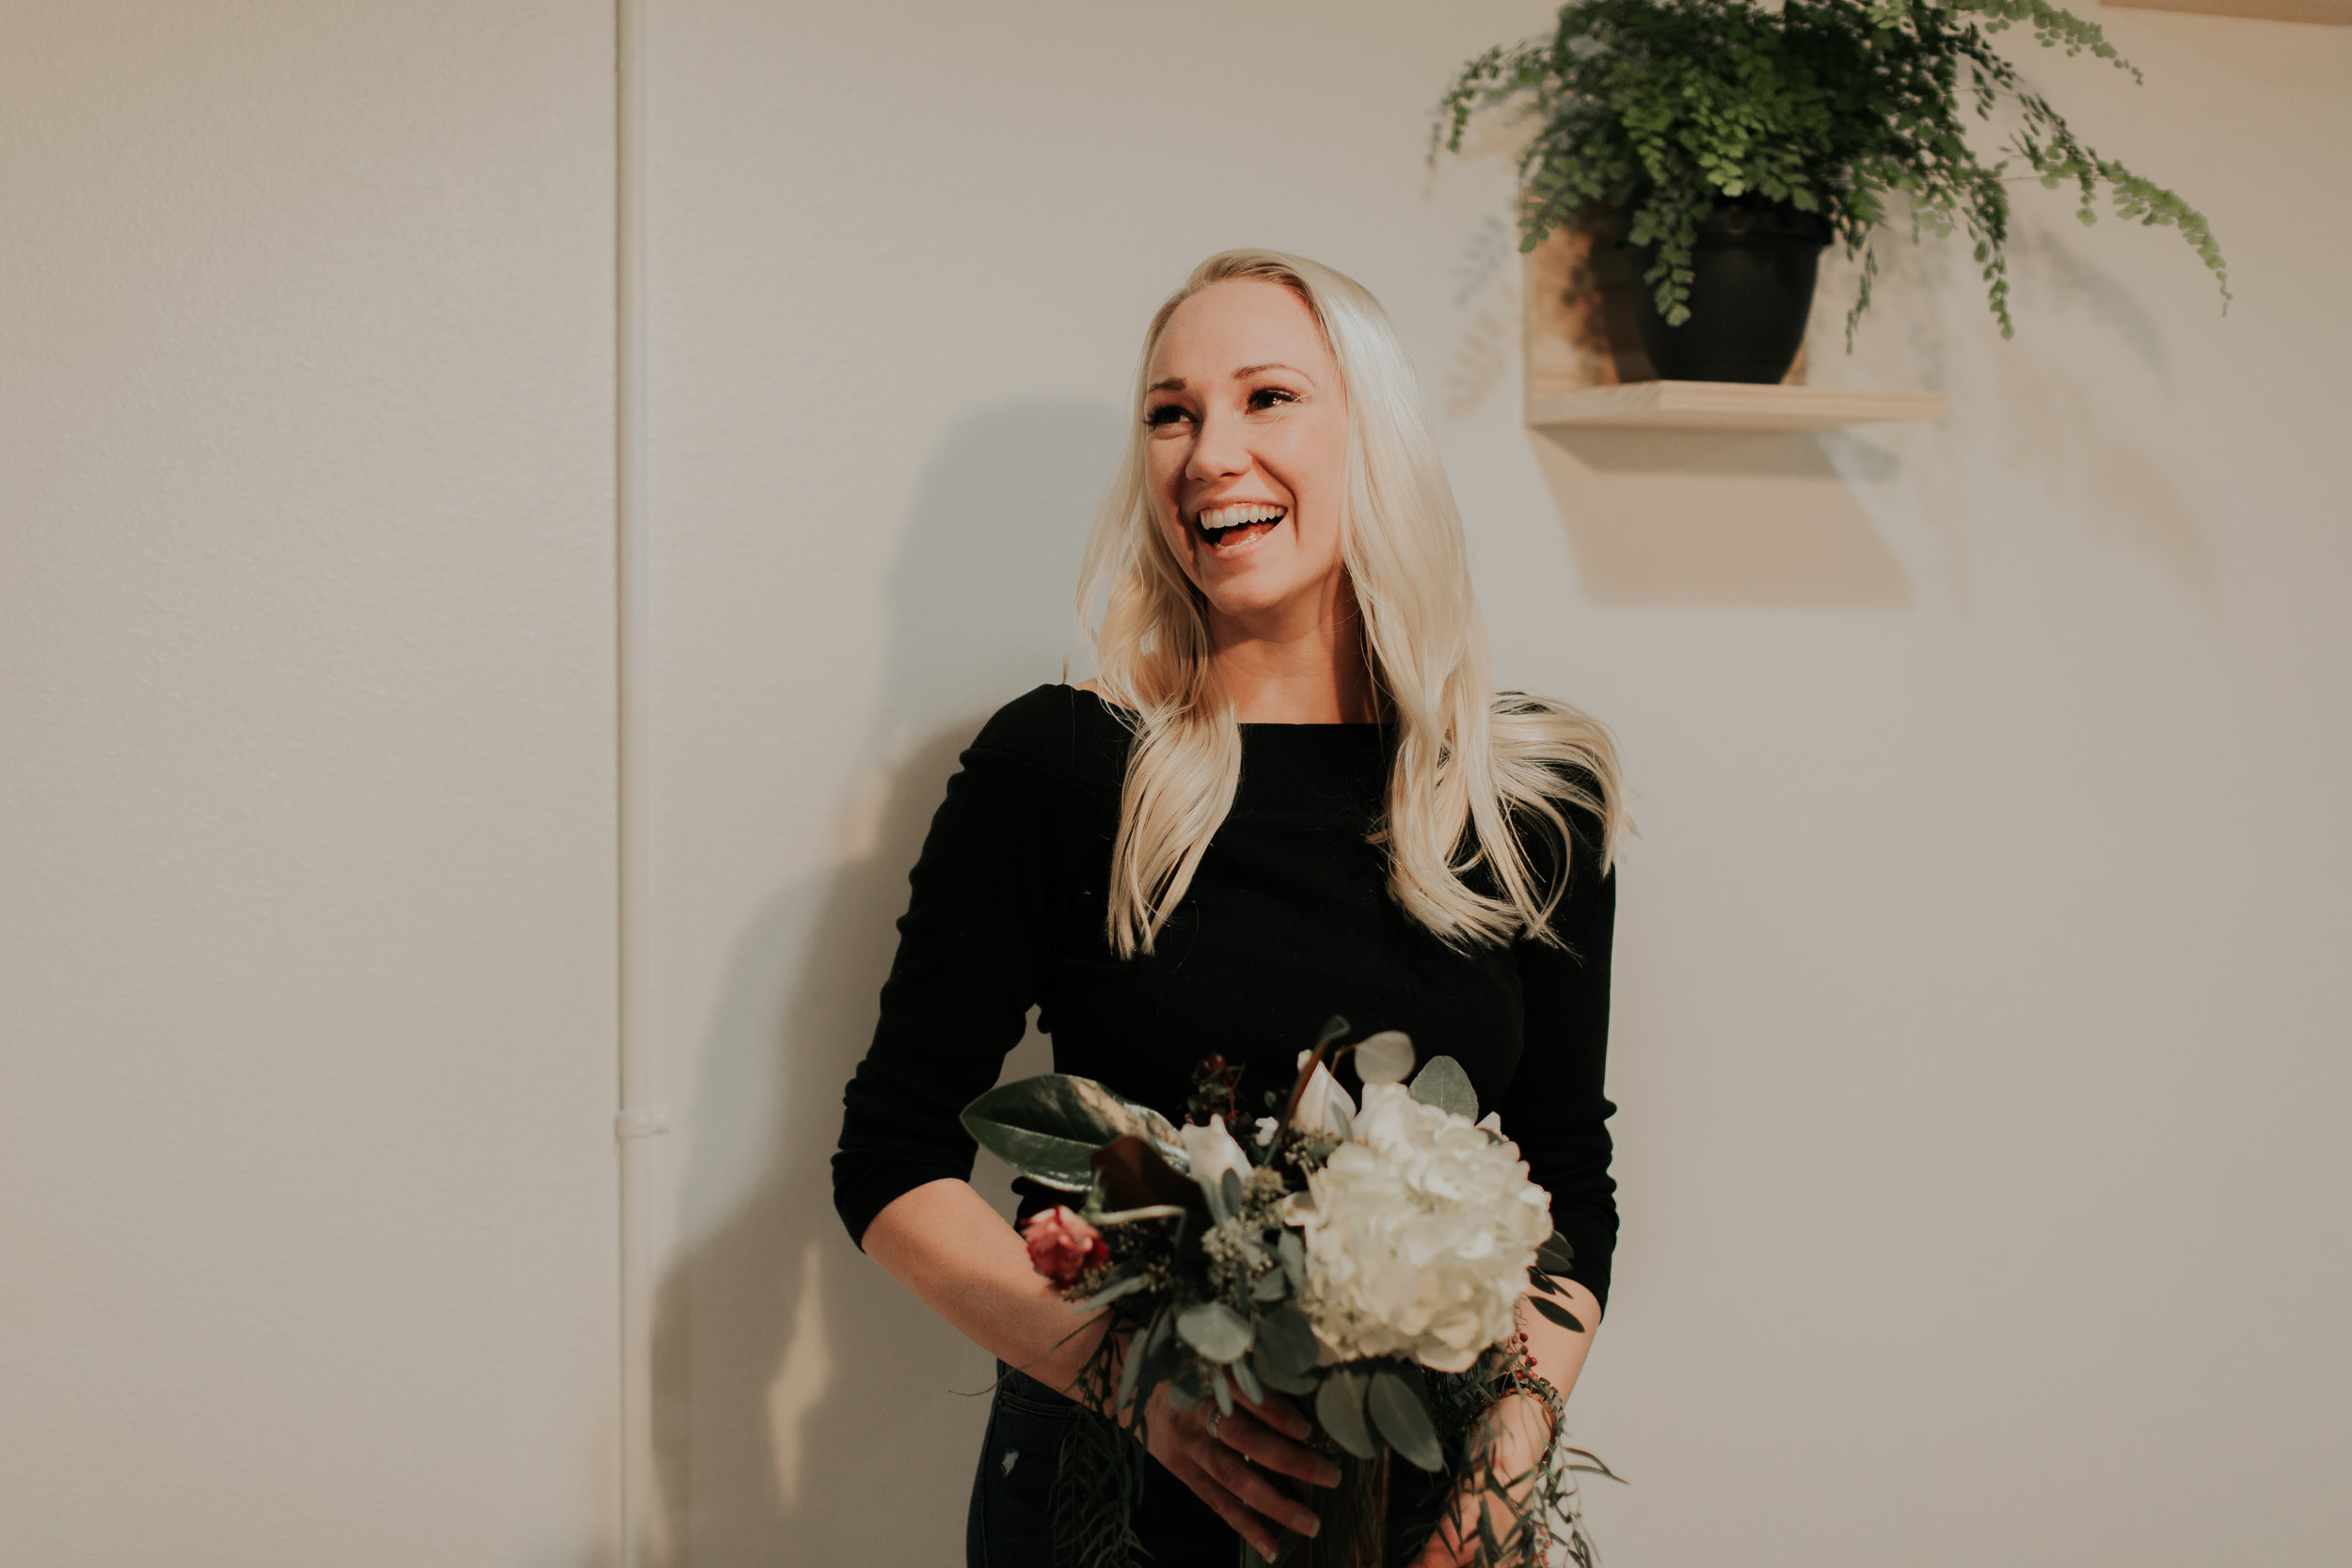 Christy Tehven in her new floral studio location in downtown Fargo. Photo by Two Pines Photography.